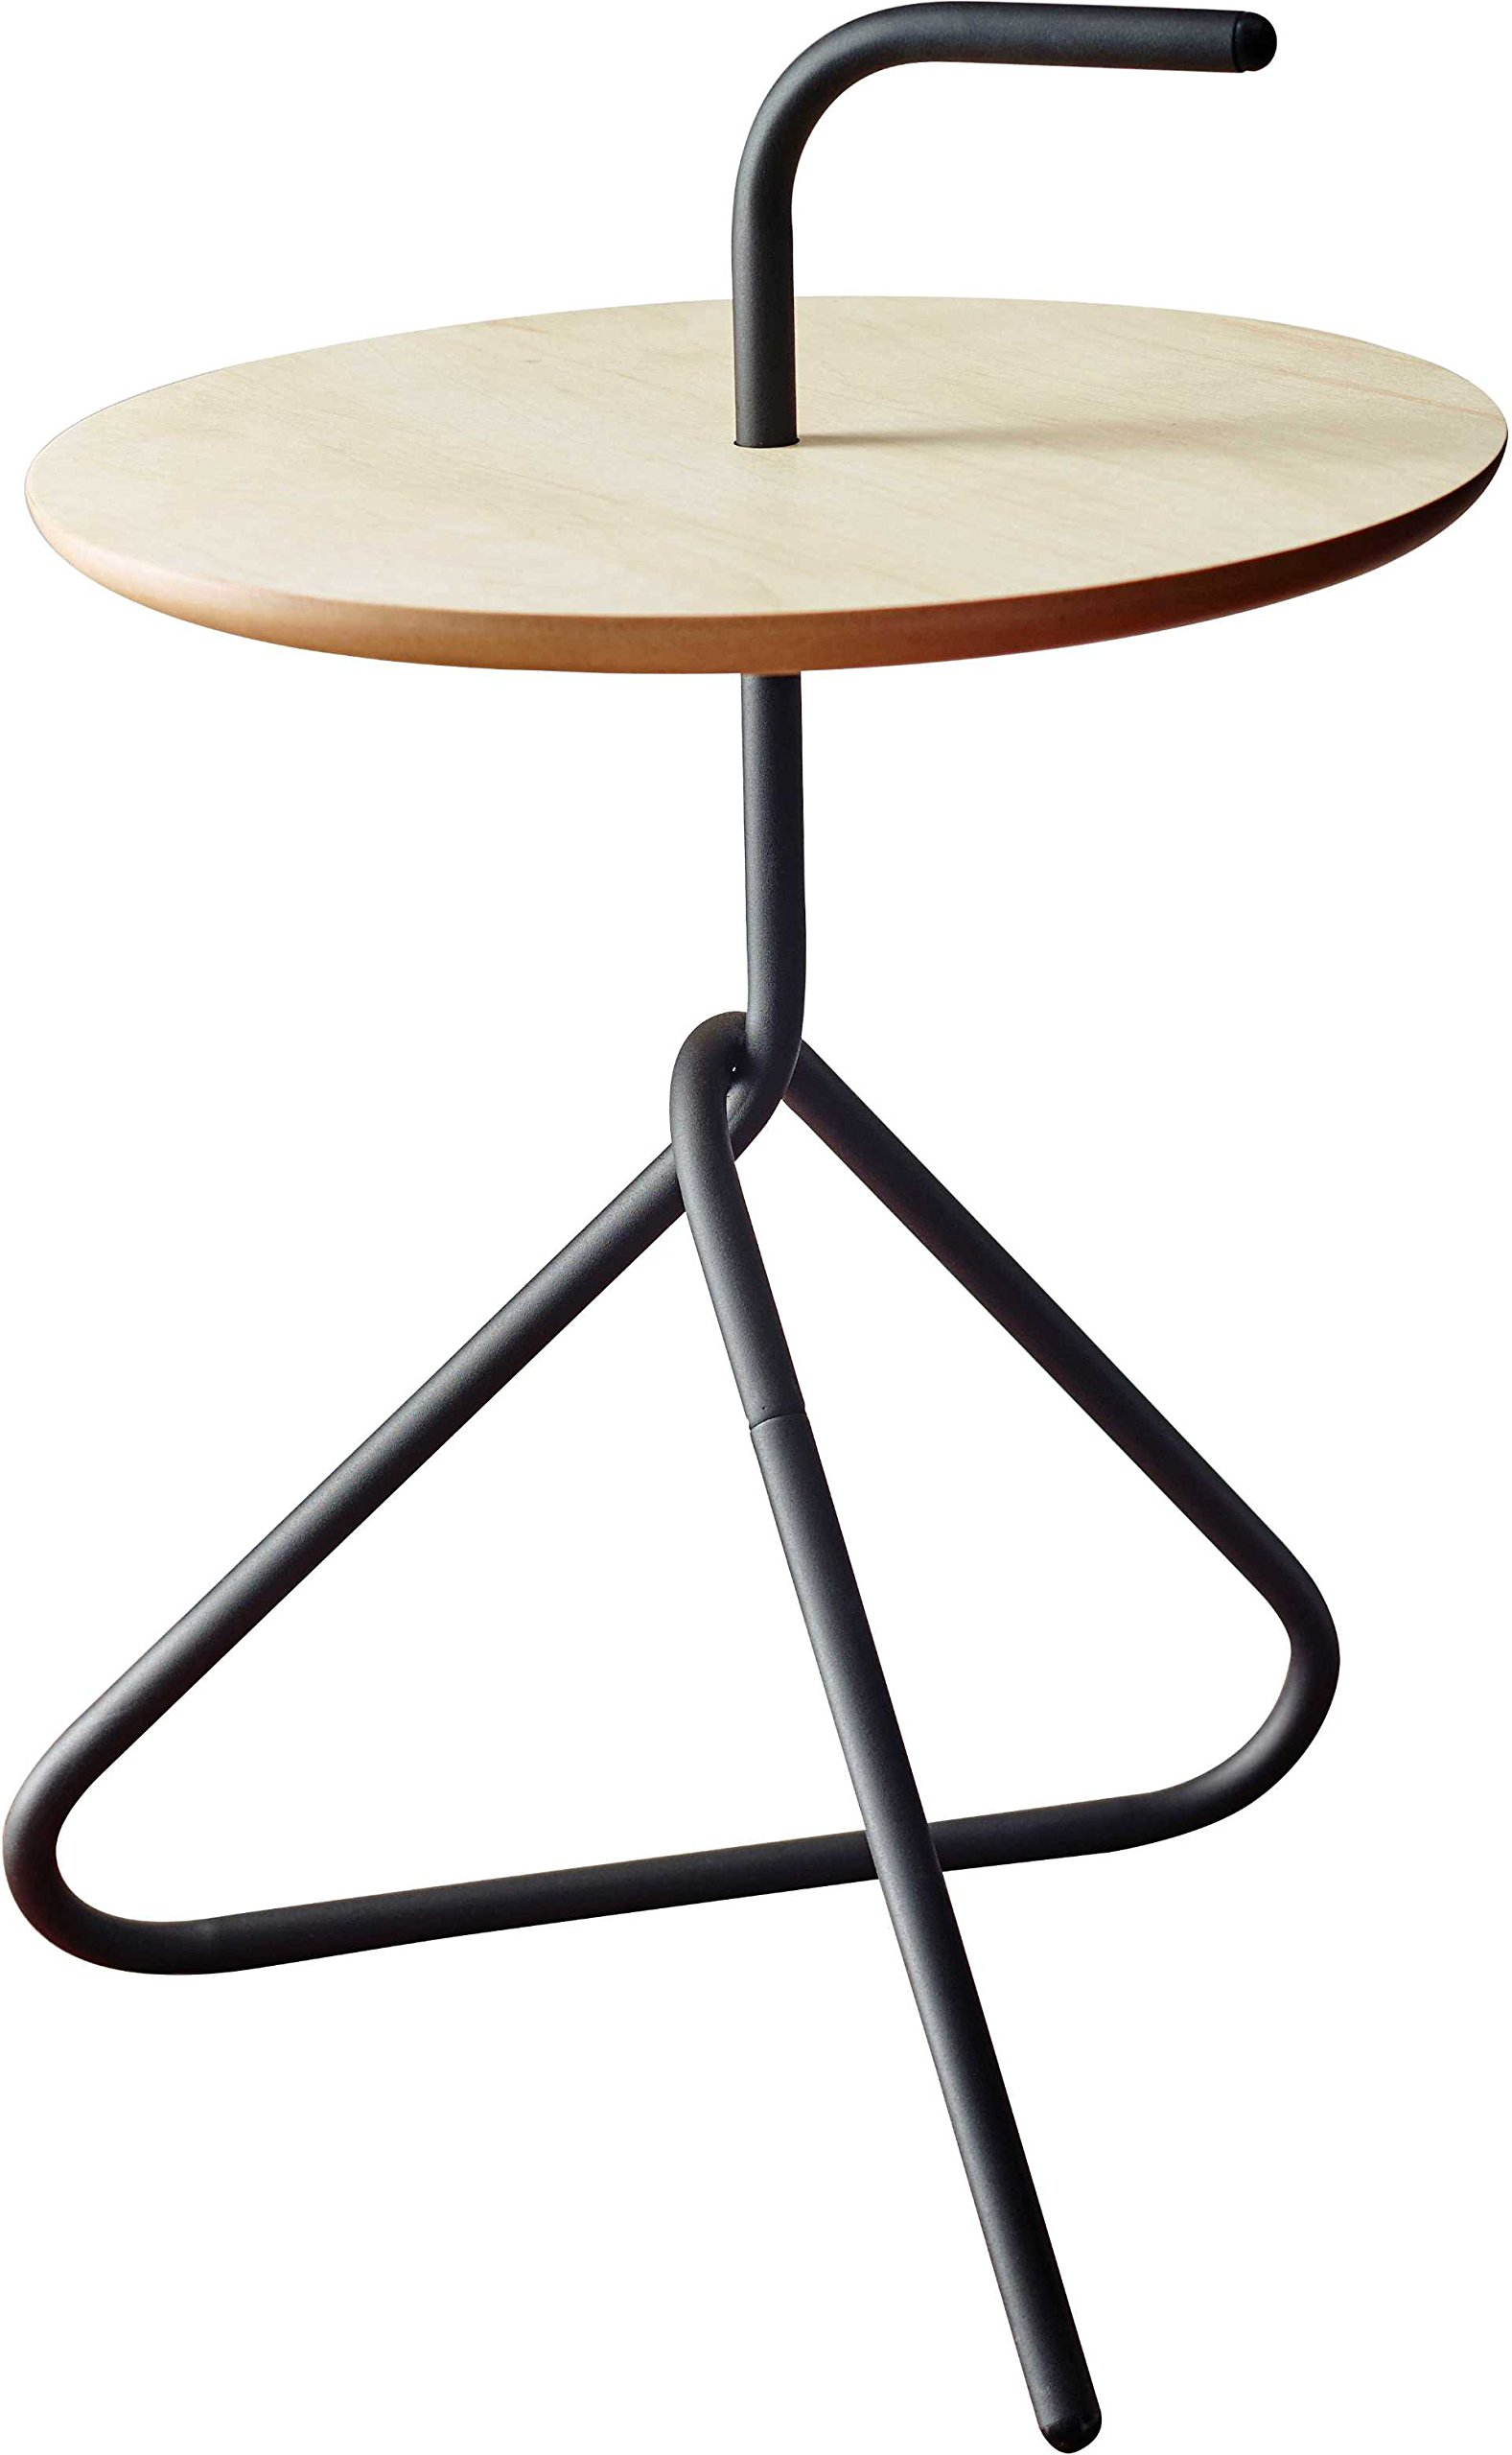 Adesso WK2870-01 Elroy Accent Table, Black